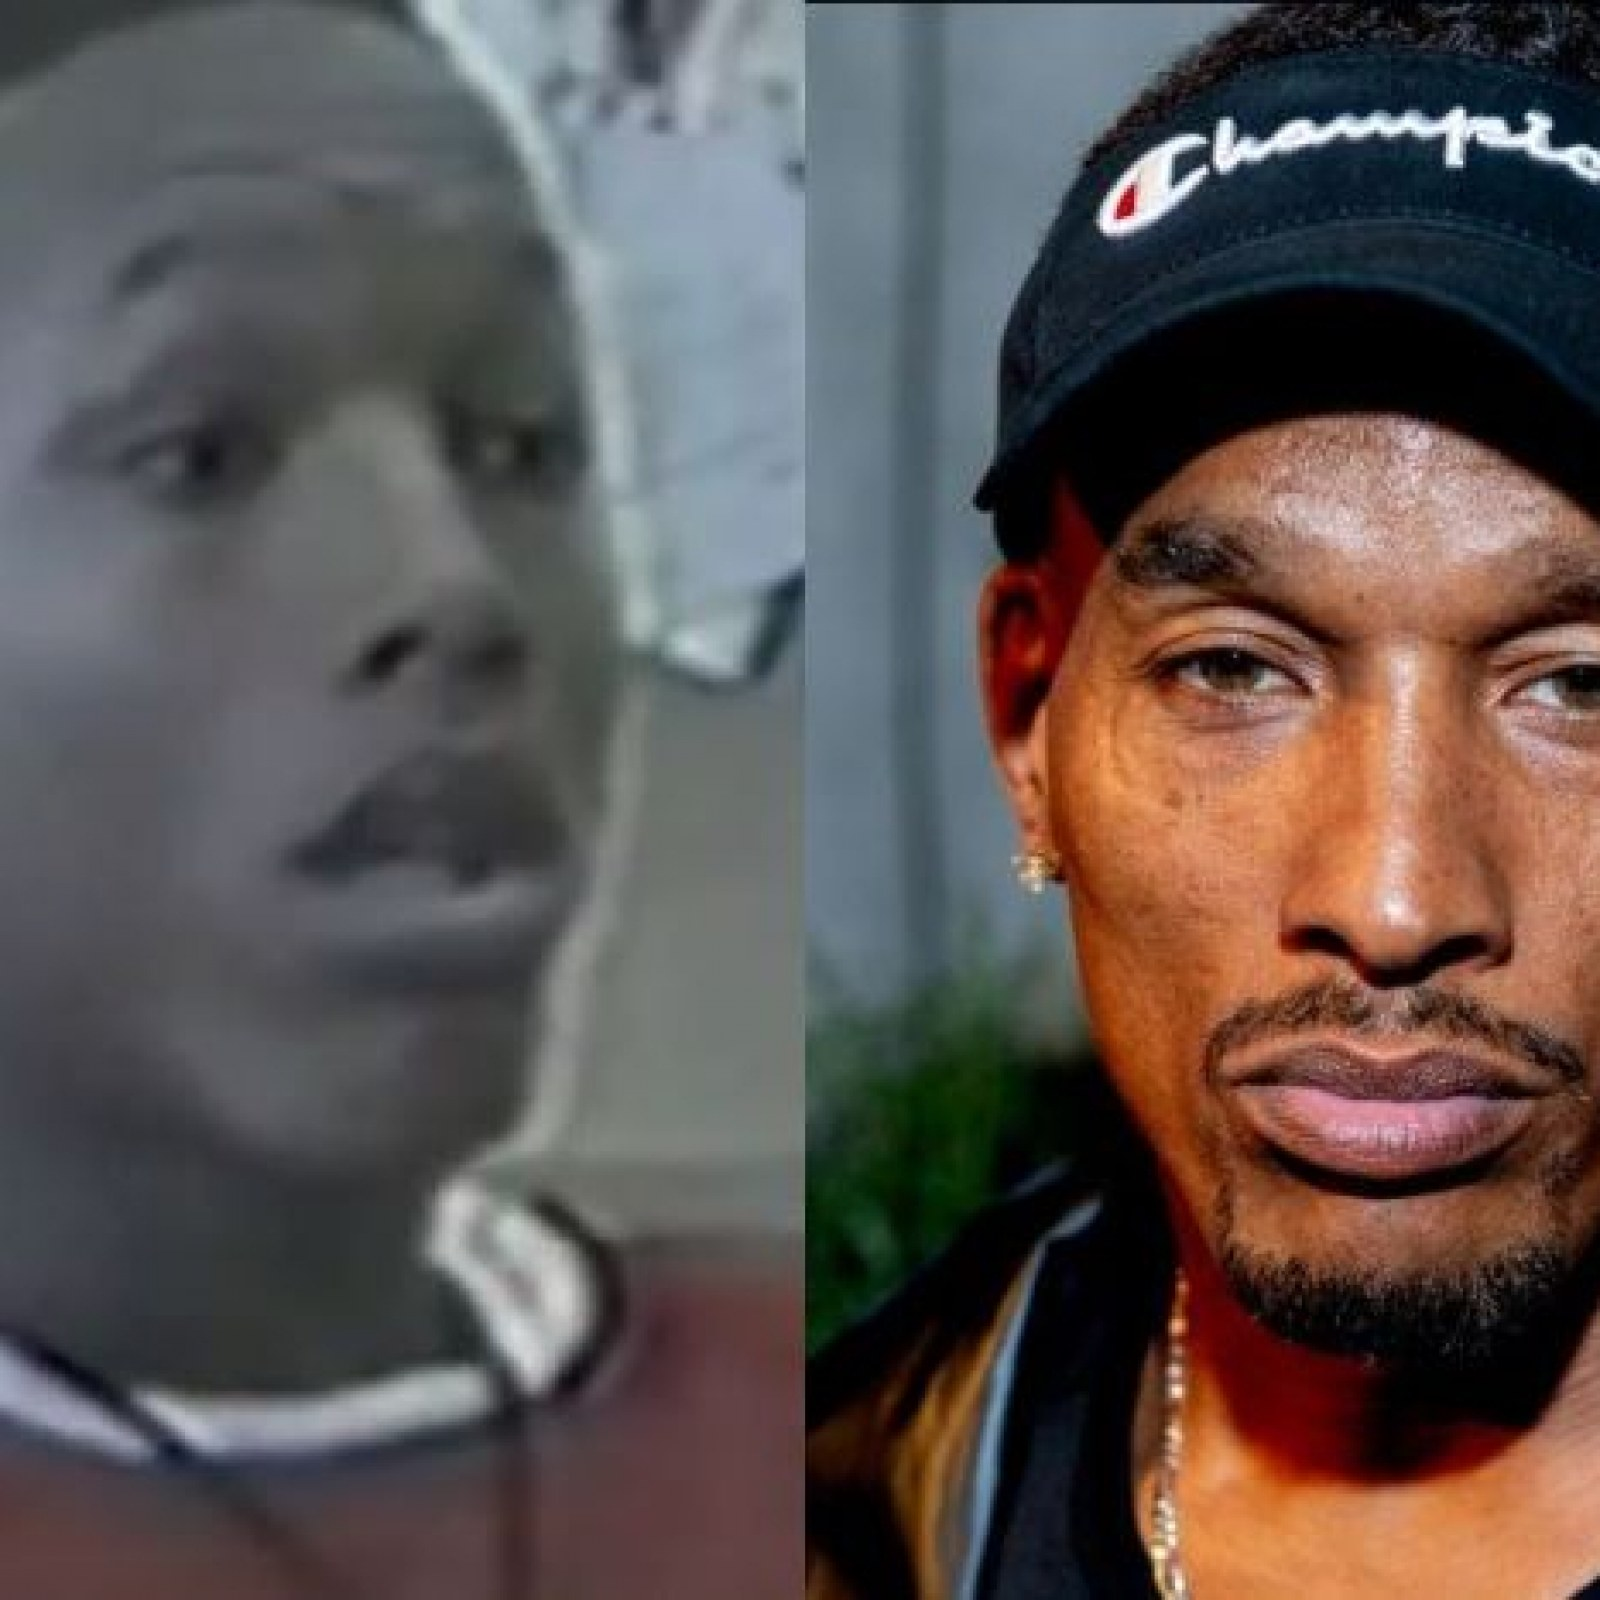 Who is Korey Wise? Tragic Victim From Central Park Five Series 'When